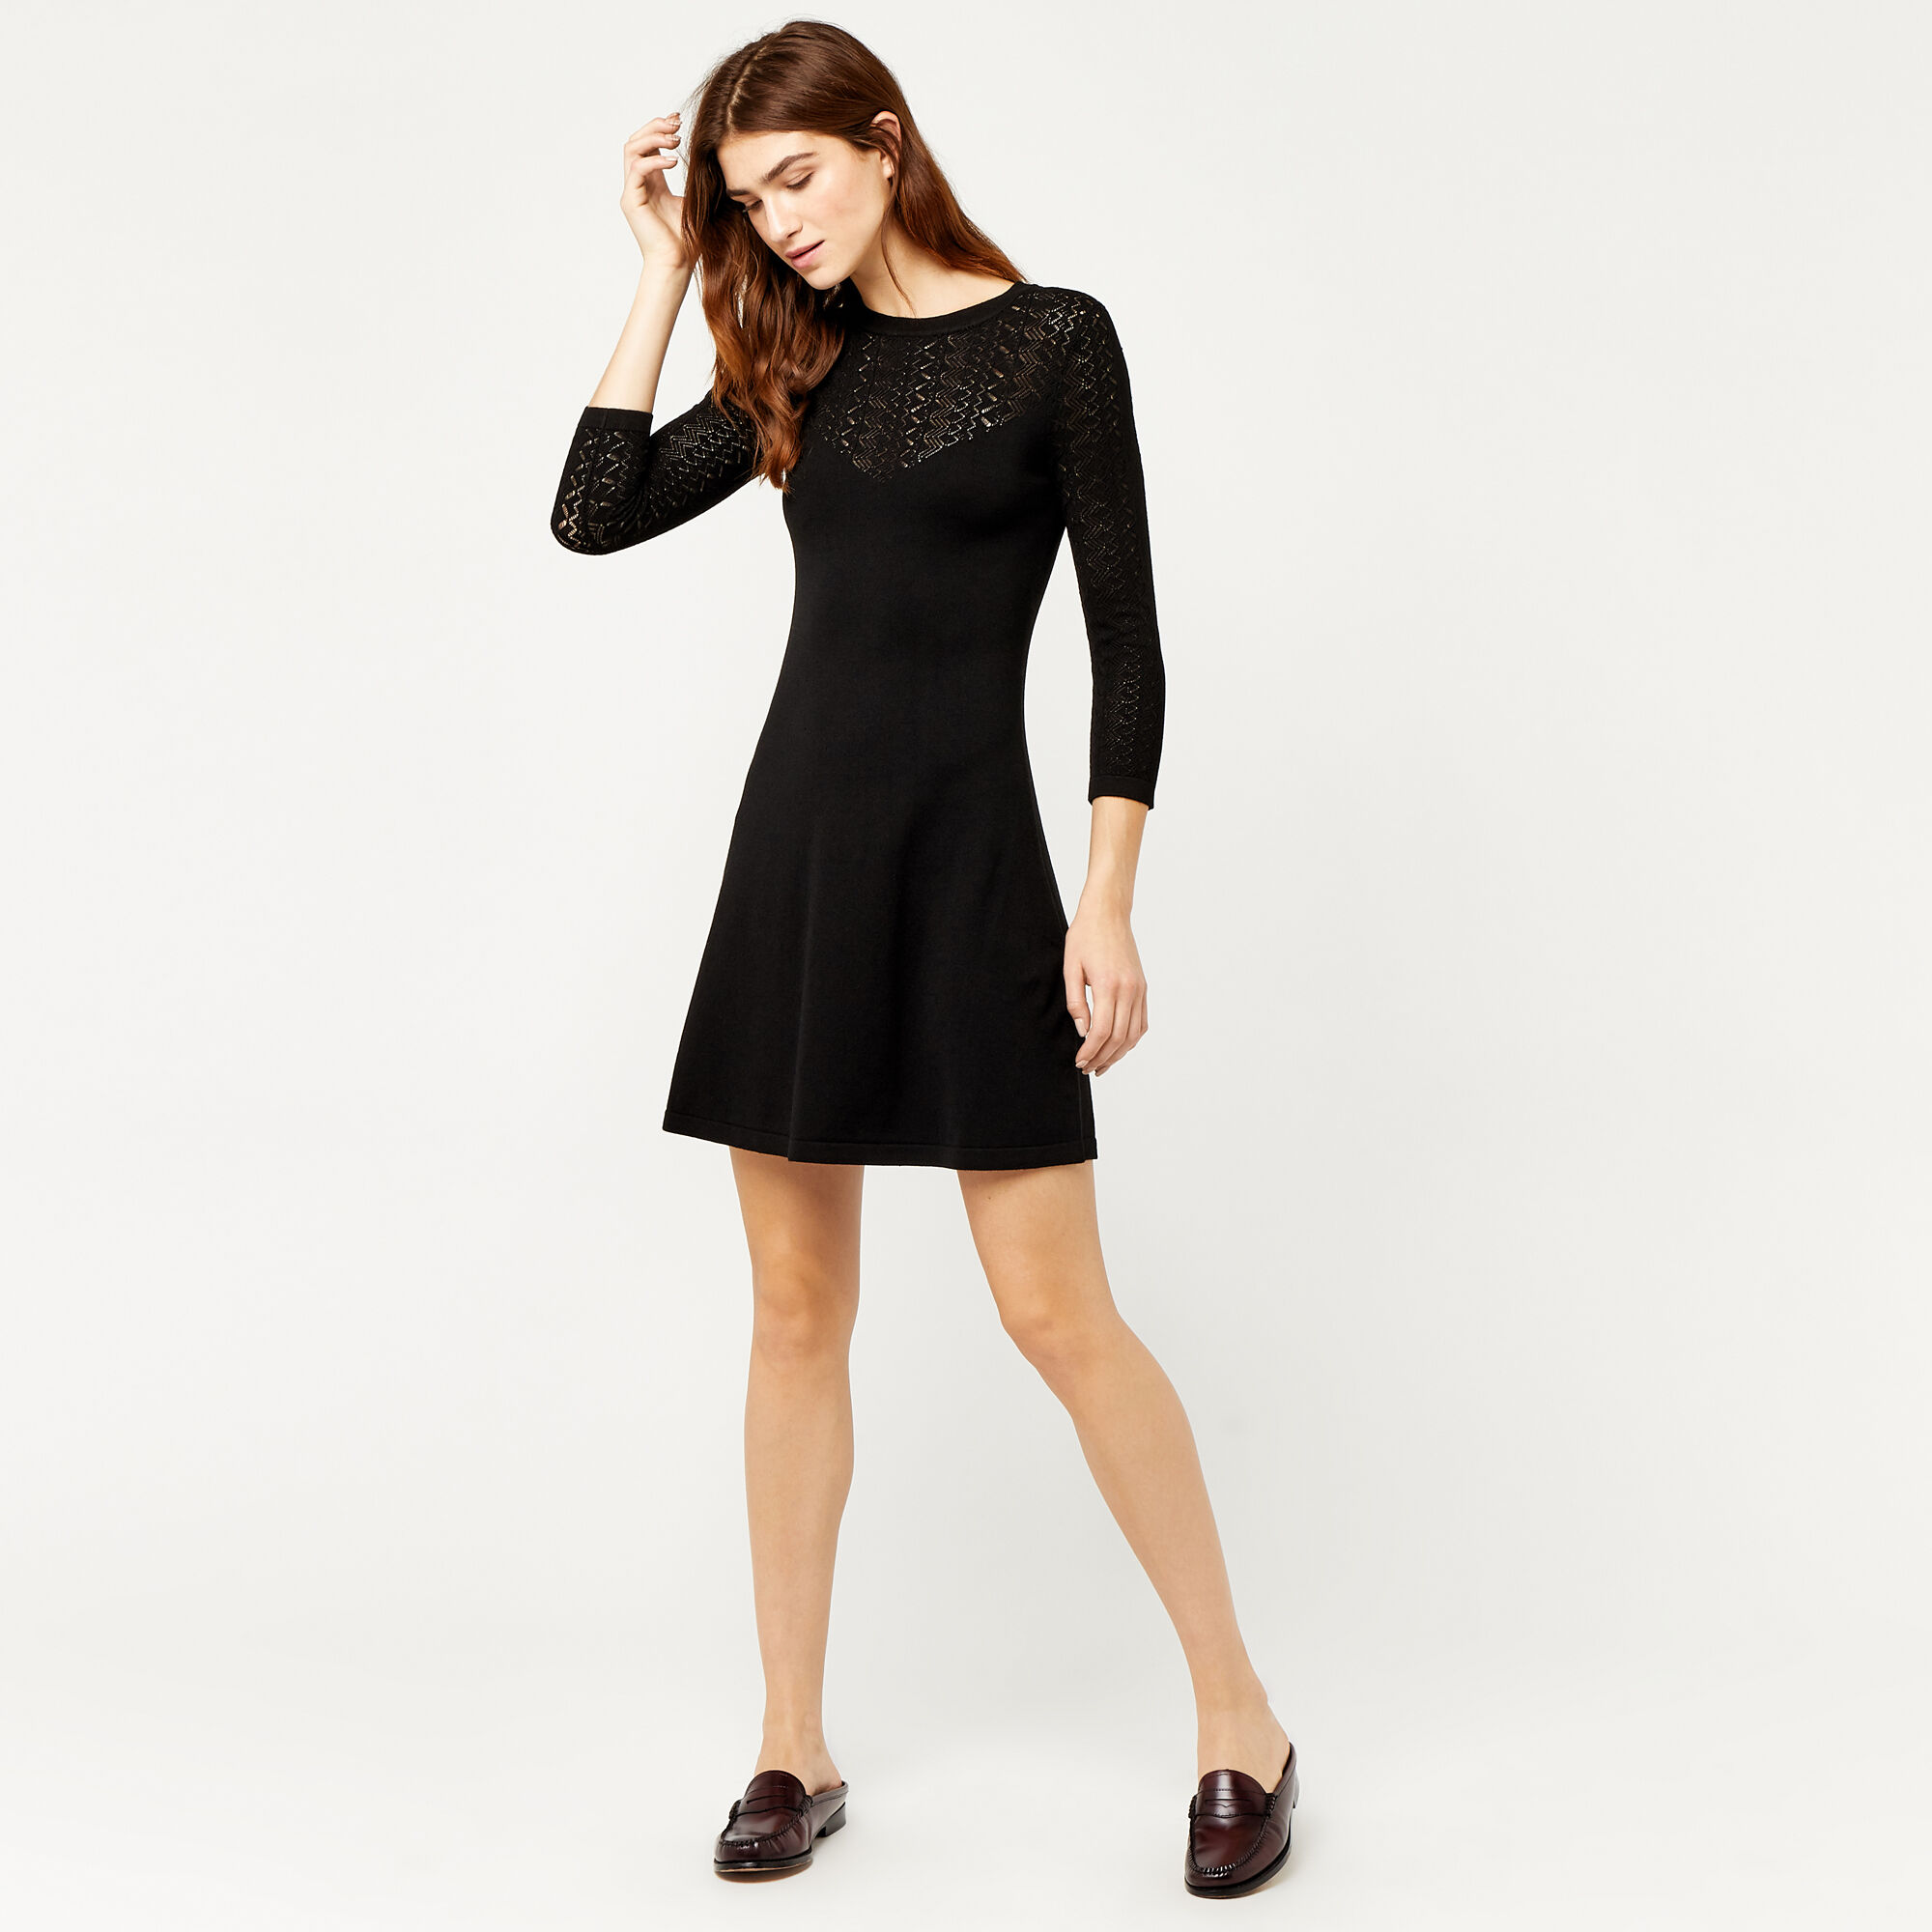 Warehouse, PRETTY STITCH YOKE KNIT DRESS Black 1